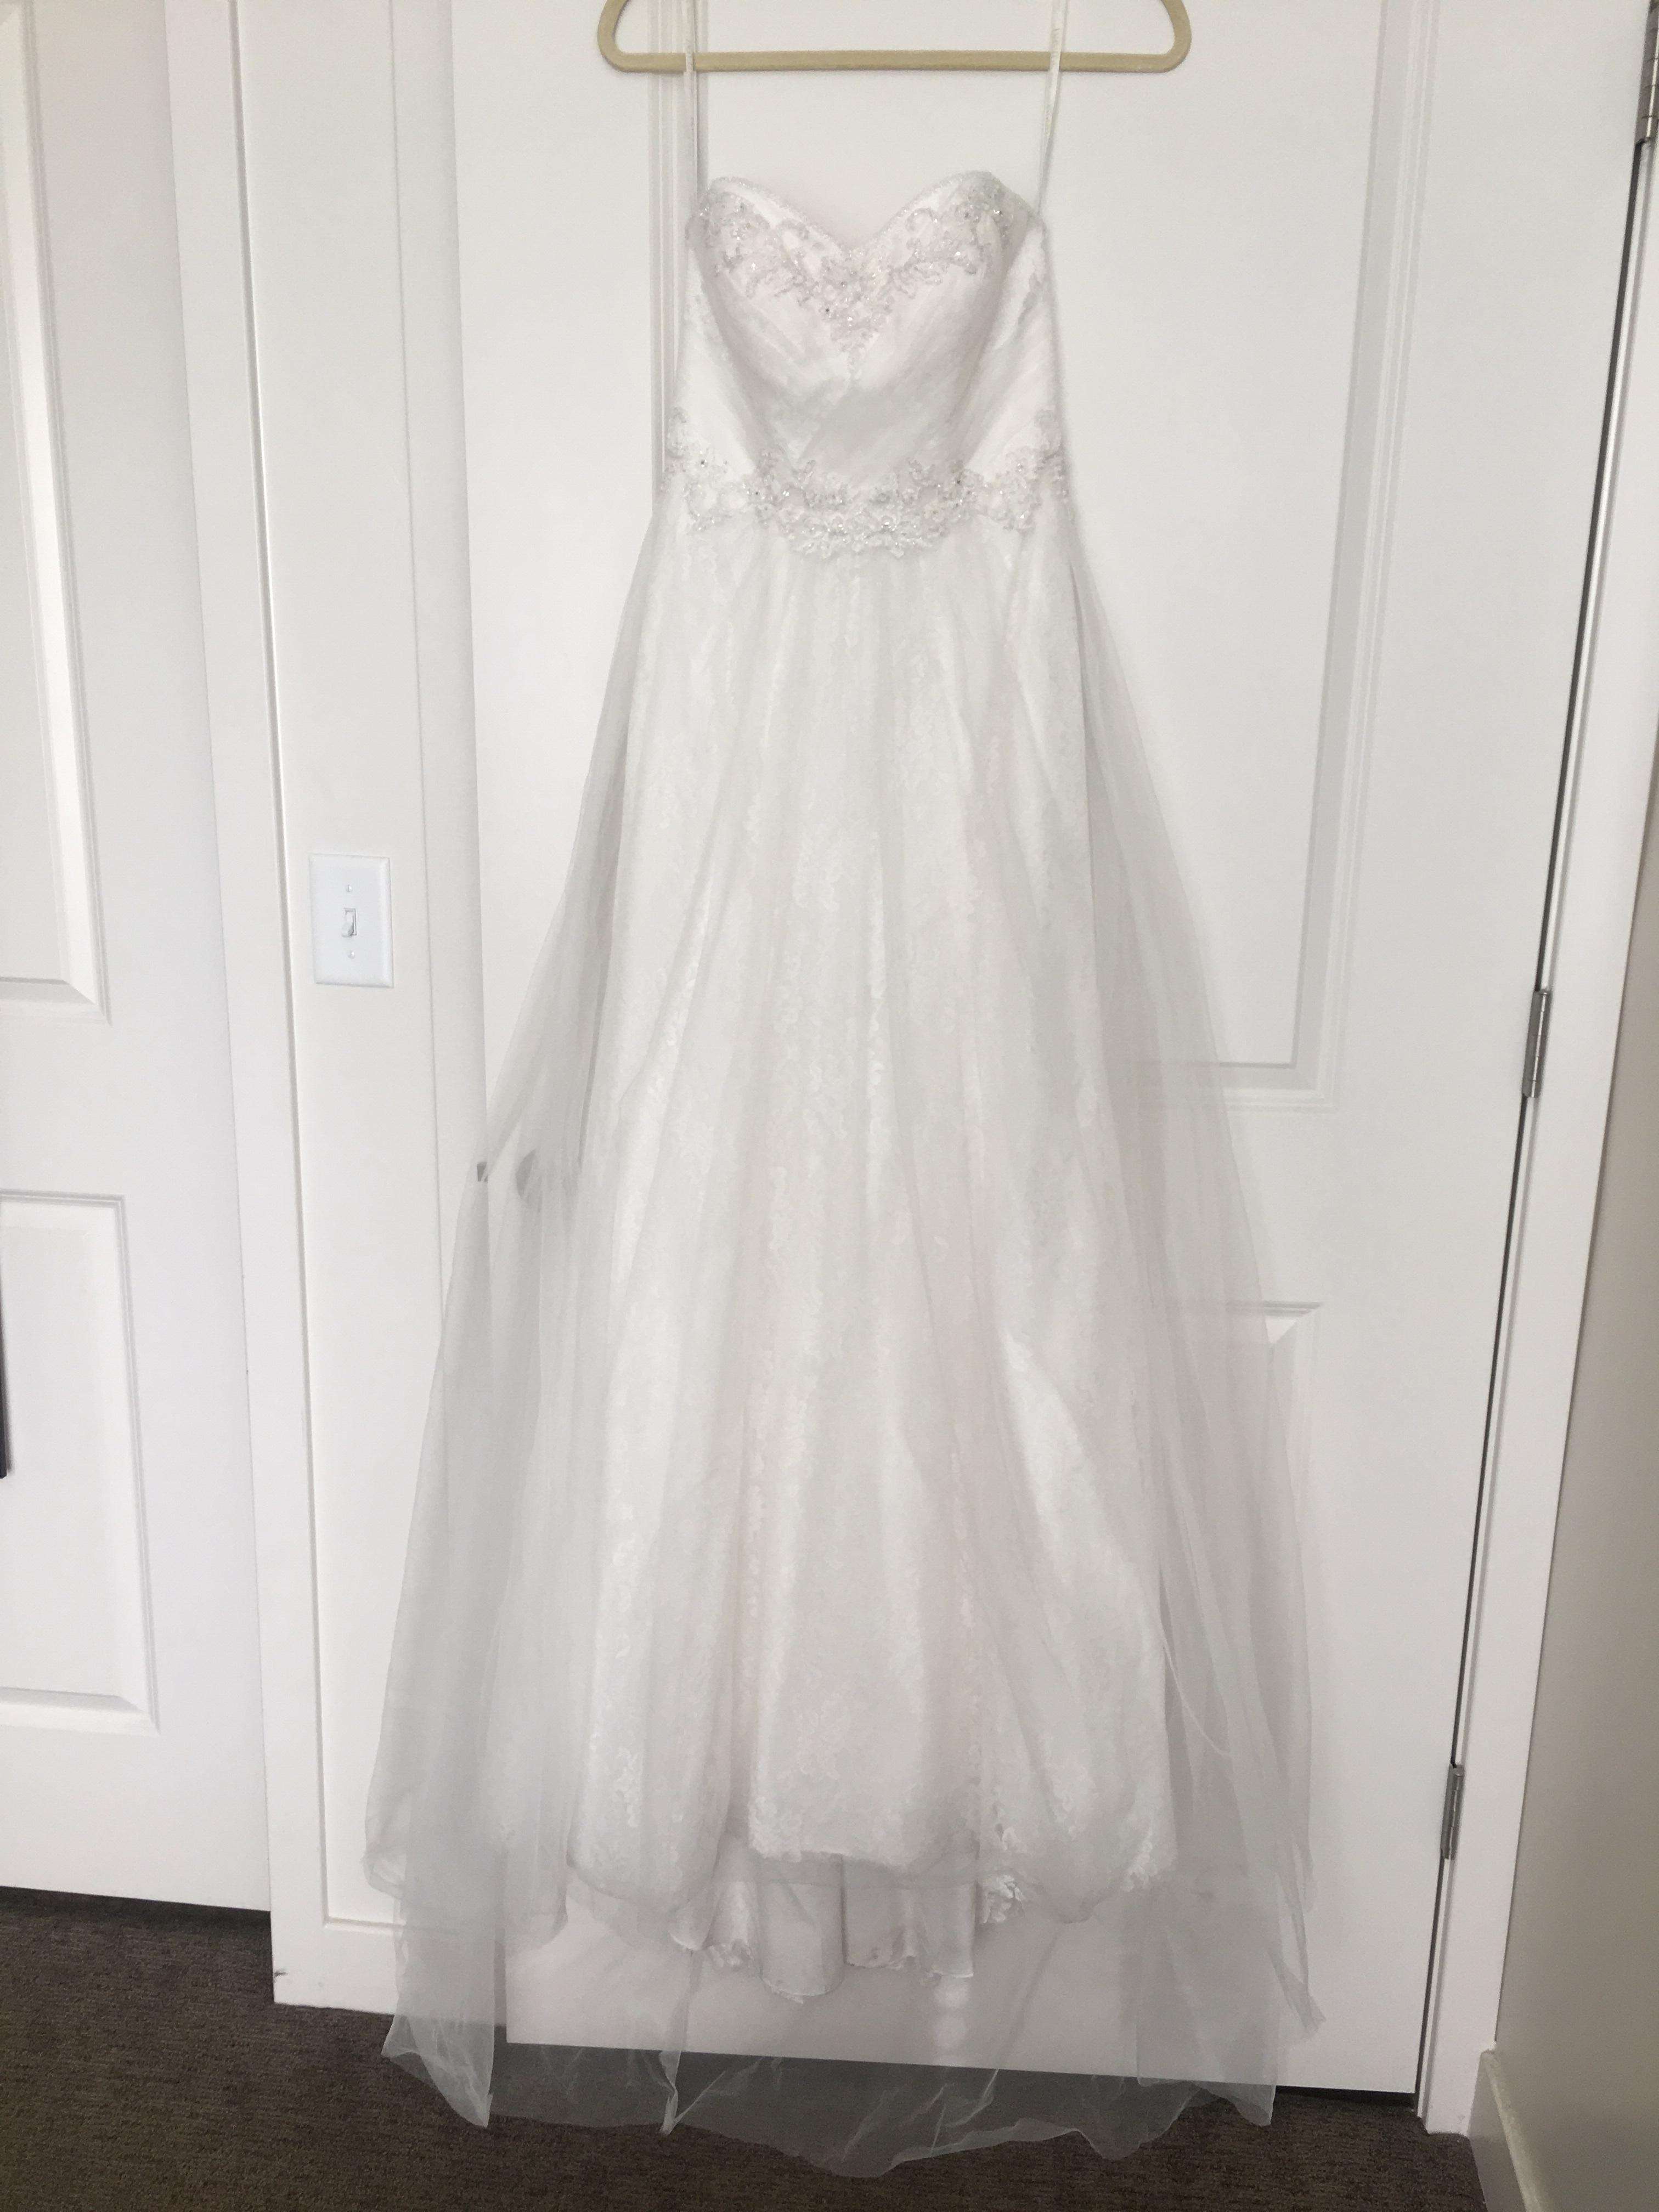 David s Bridal Ivory Tulle  Polyester Lace  55  Nylon 45  Rayon     12345678910